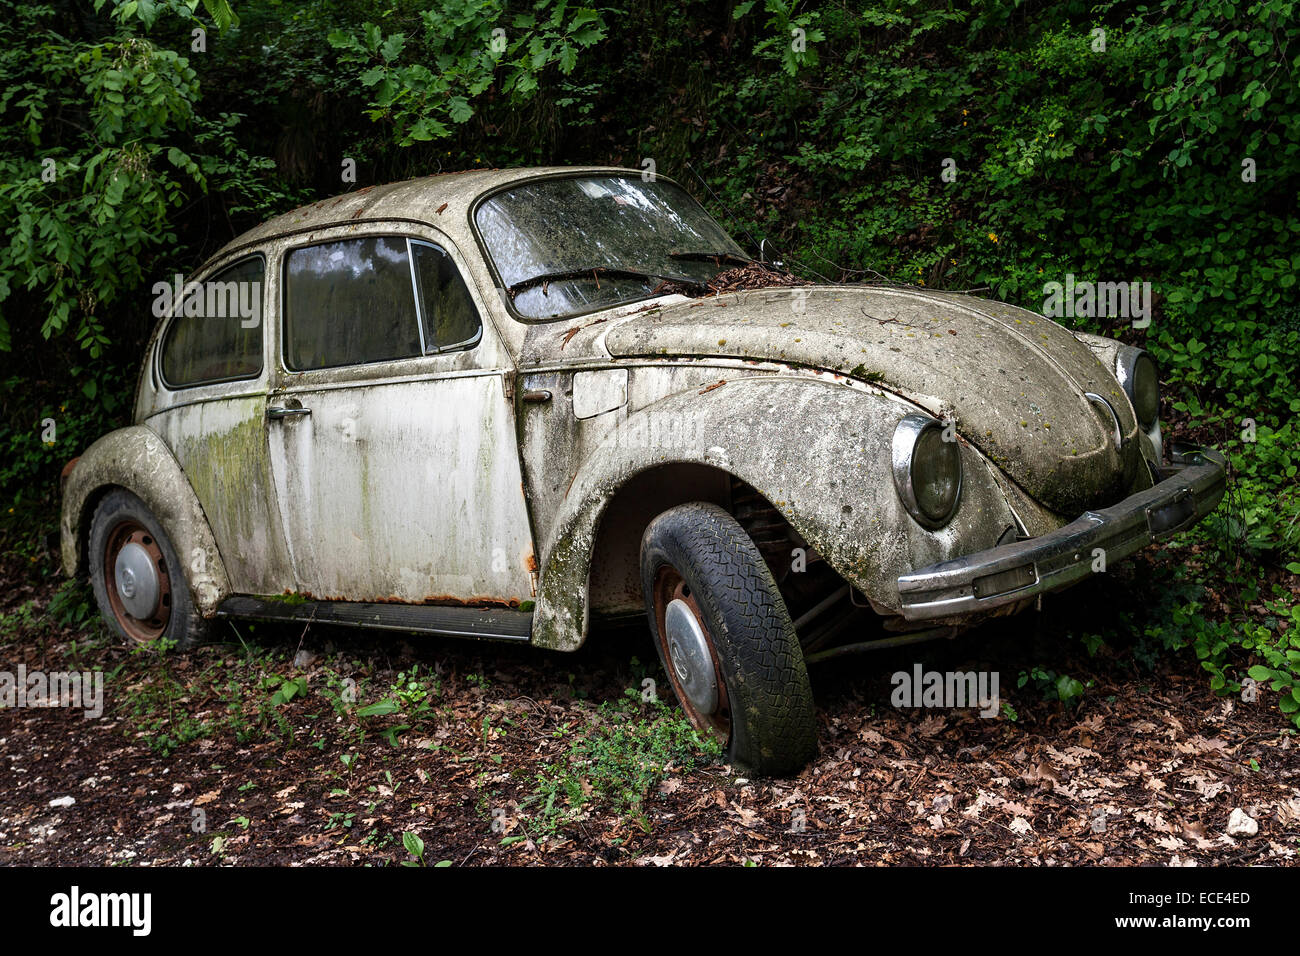 Old car in woods Stock Photo: 14637833 - Alamy